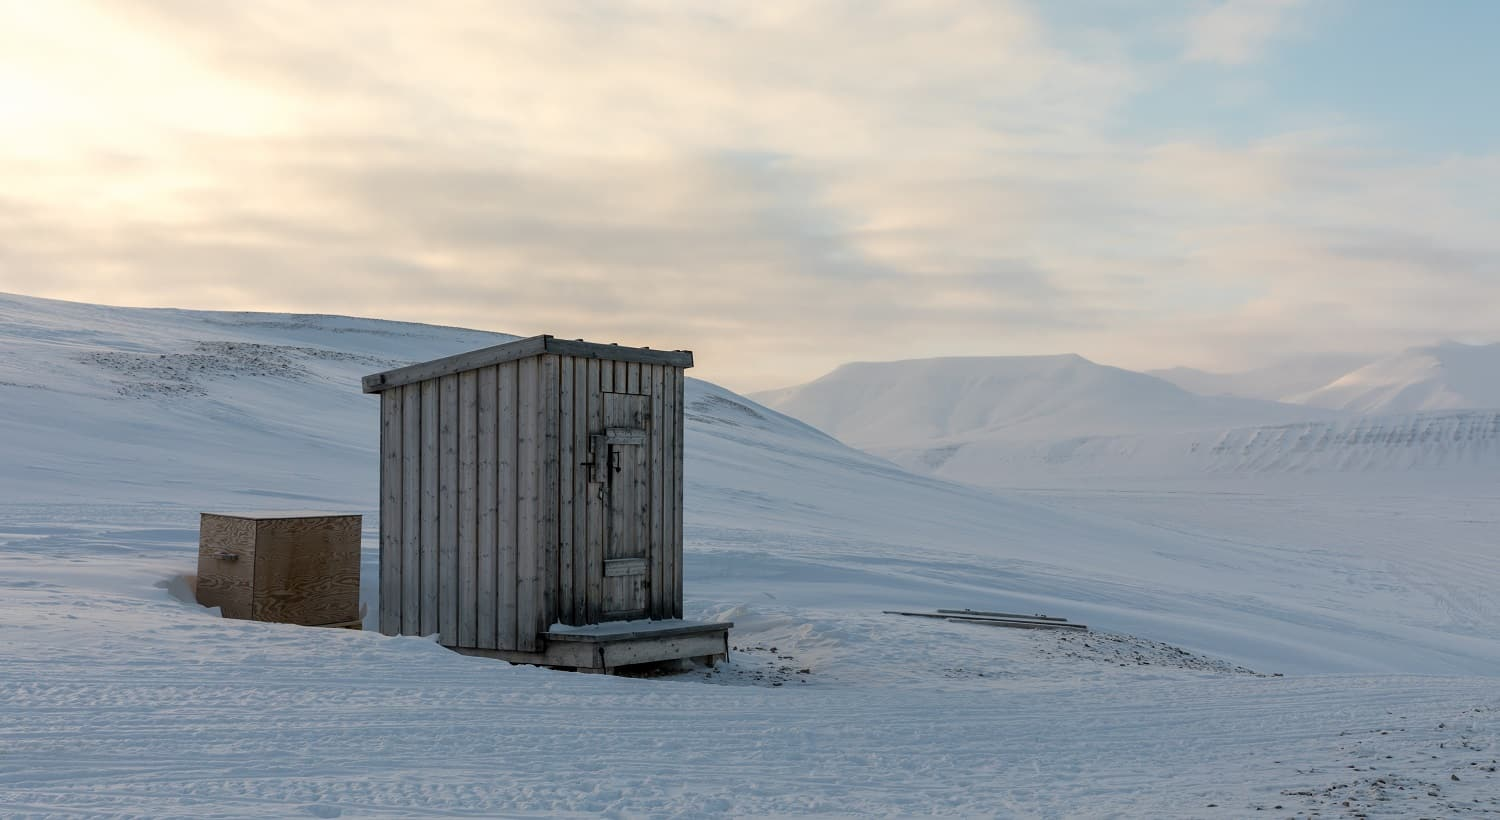 Isolated small shed in the middle of huge mountains covered by snow in the arctic landscape at Svalbard, Norway